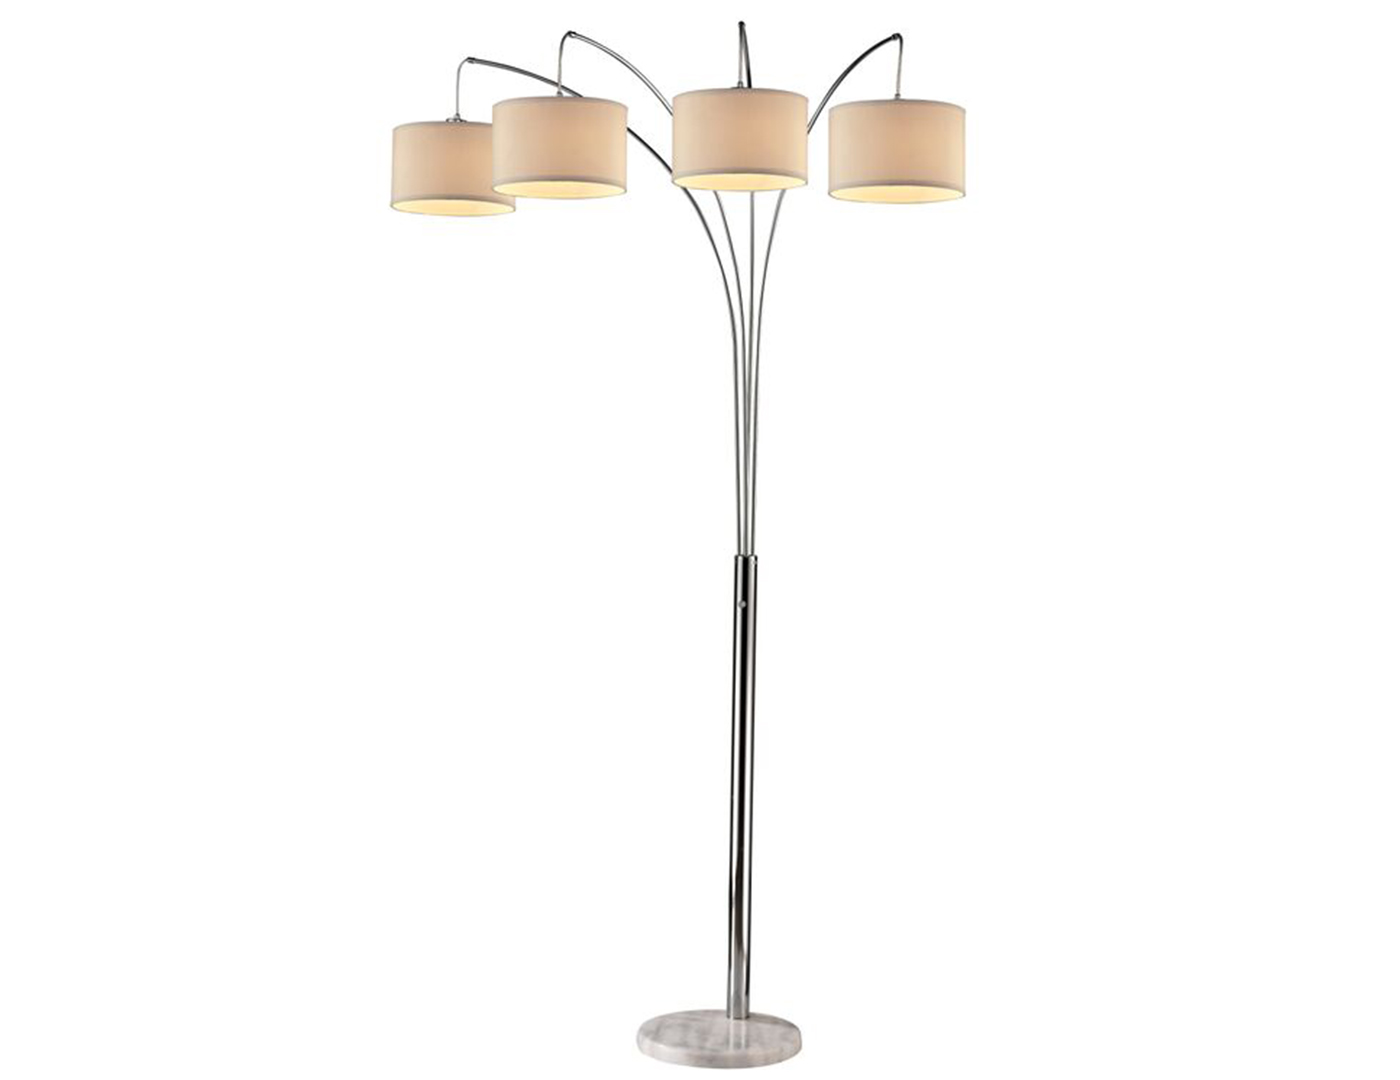 "Silver 4-Light With Drum Shades Floor Arc Lamp 84""H"